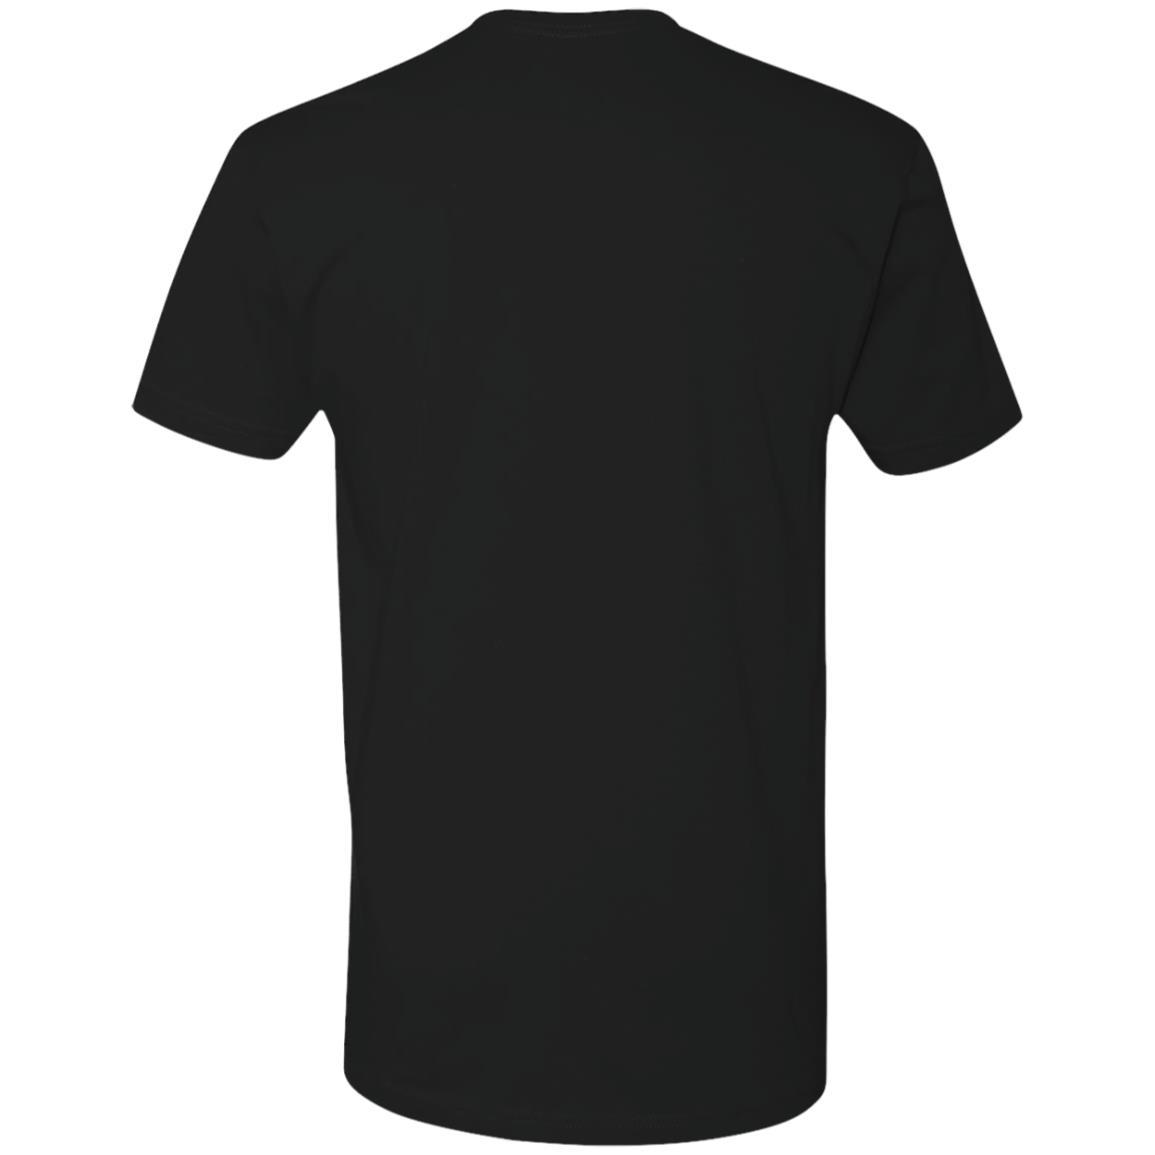 Next Level Premium Short Sleeve T-Shirt